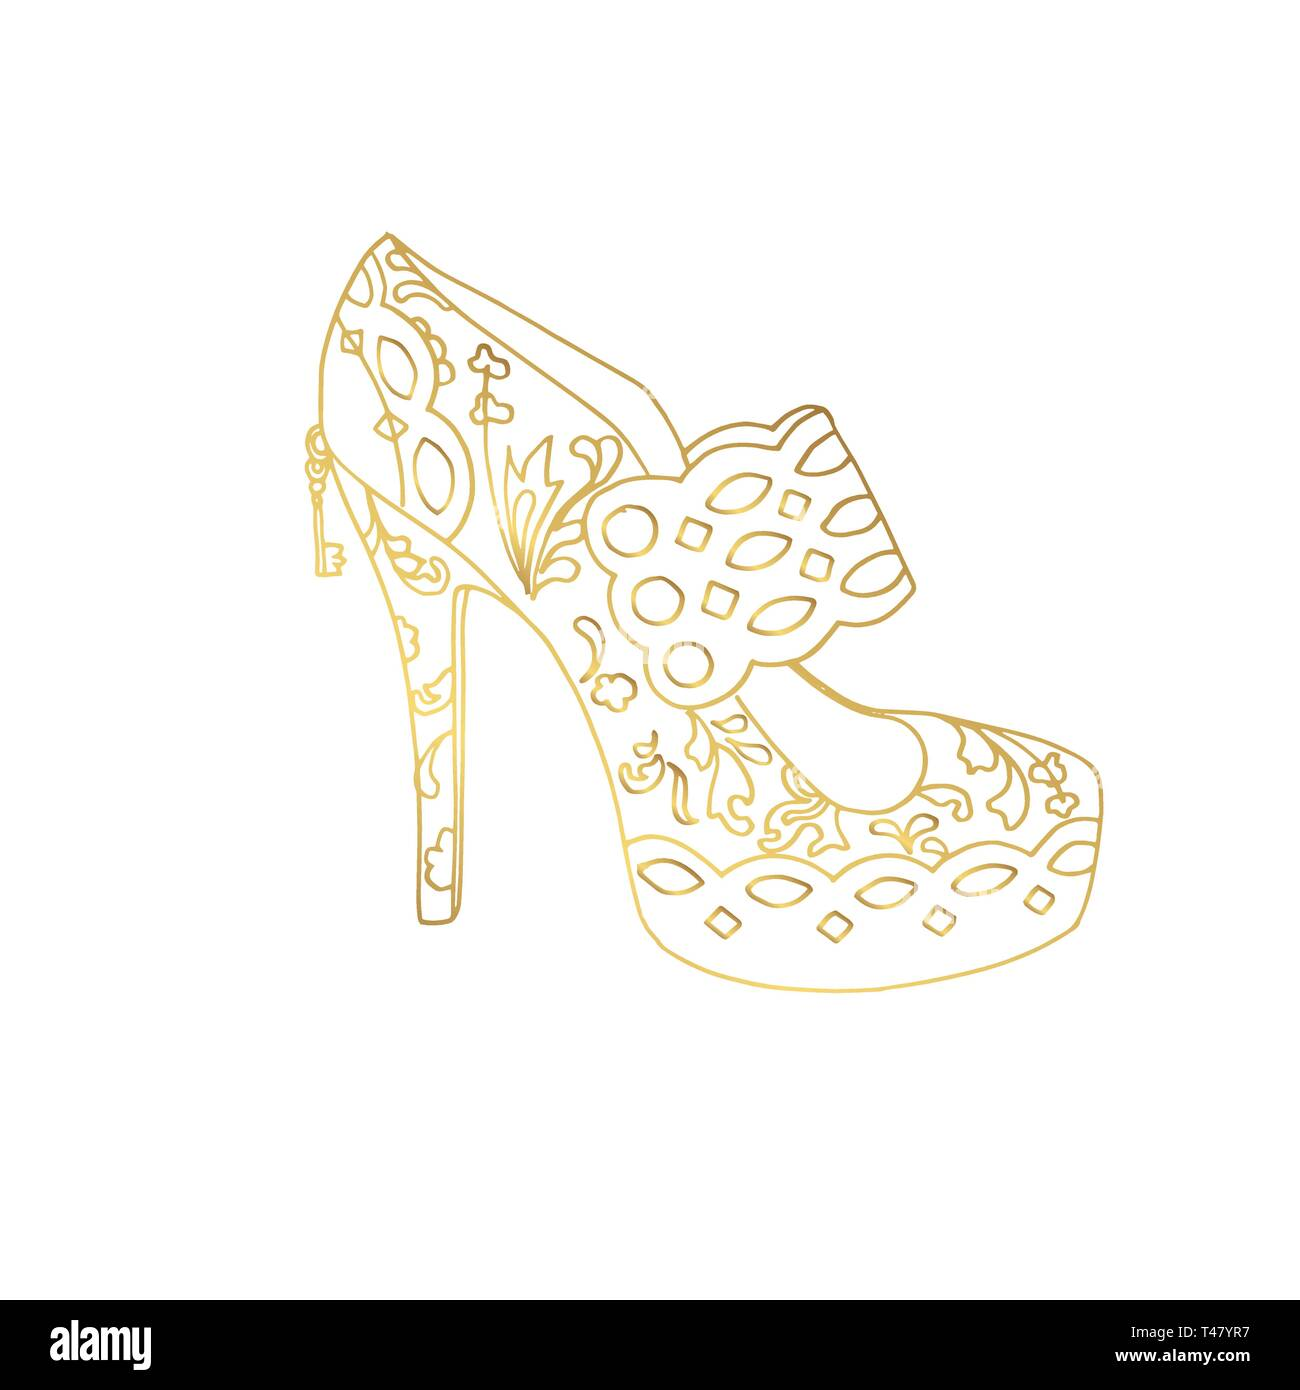 Lady hogh heels or woman T-strap, girl shoes. Golden female boot with doodle style pattern, women clothing ornamental accessory. Glamor and shopping art, hand drawn boutique theme for coloring book - Stock Image